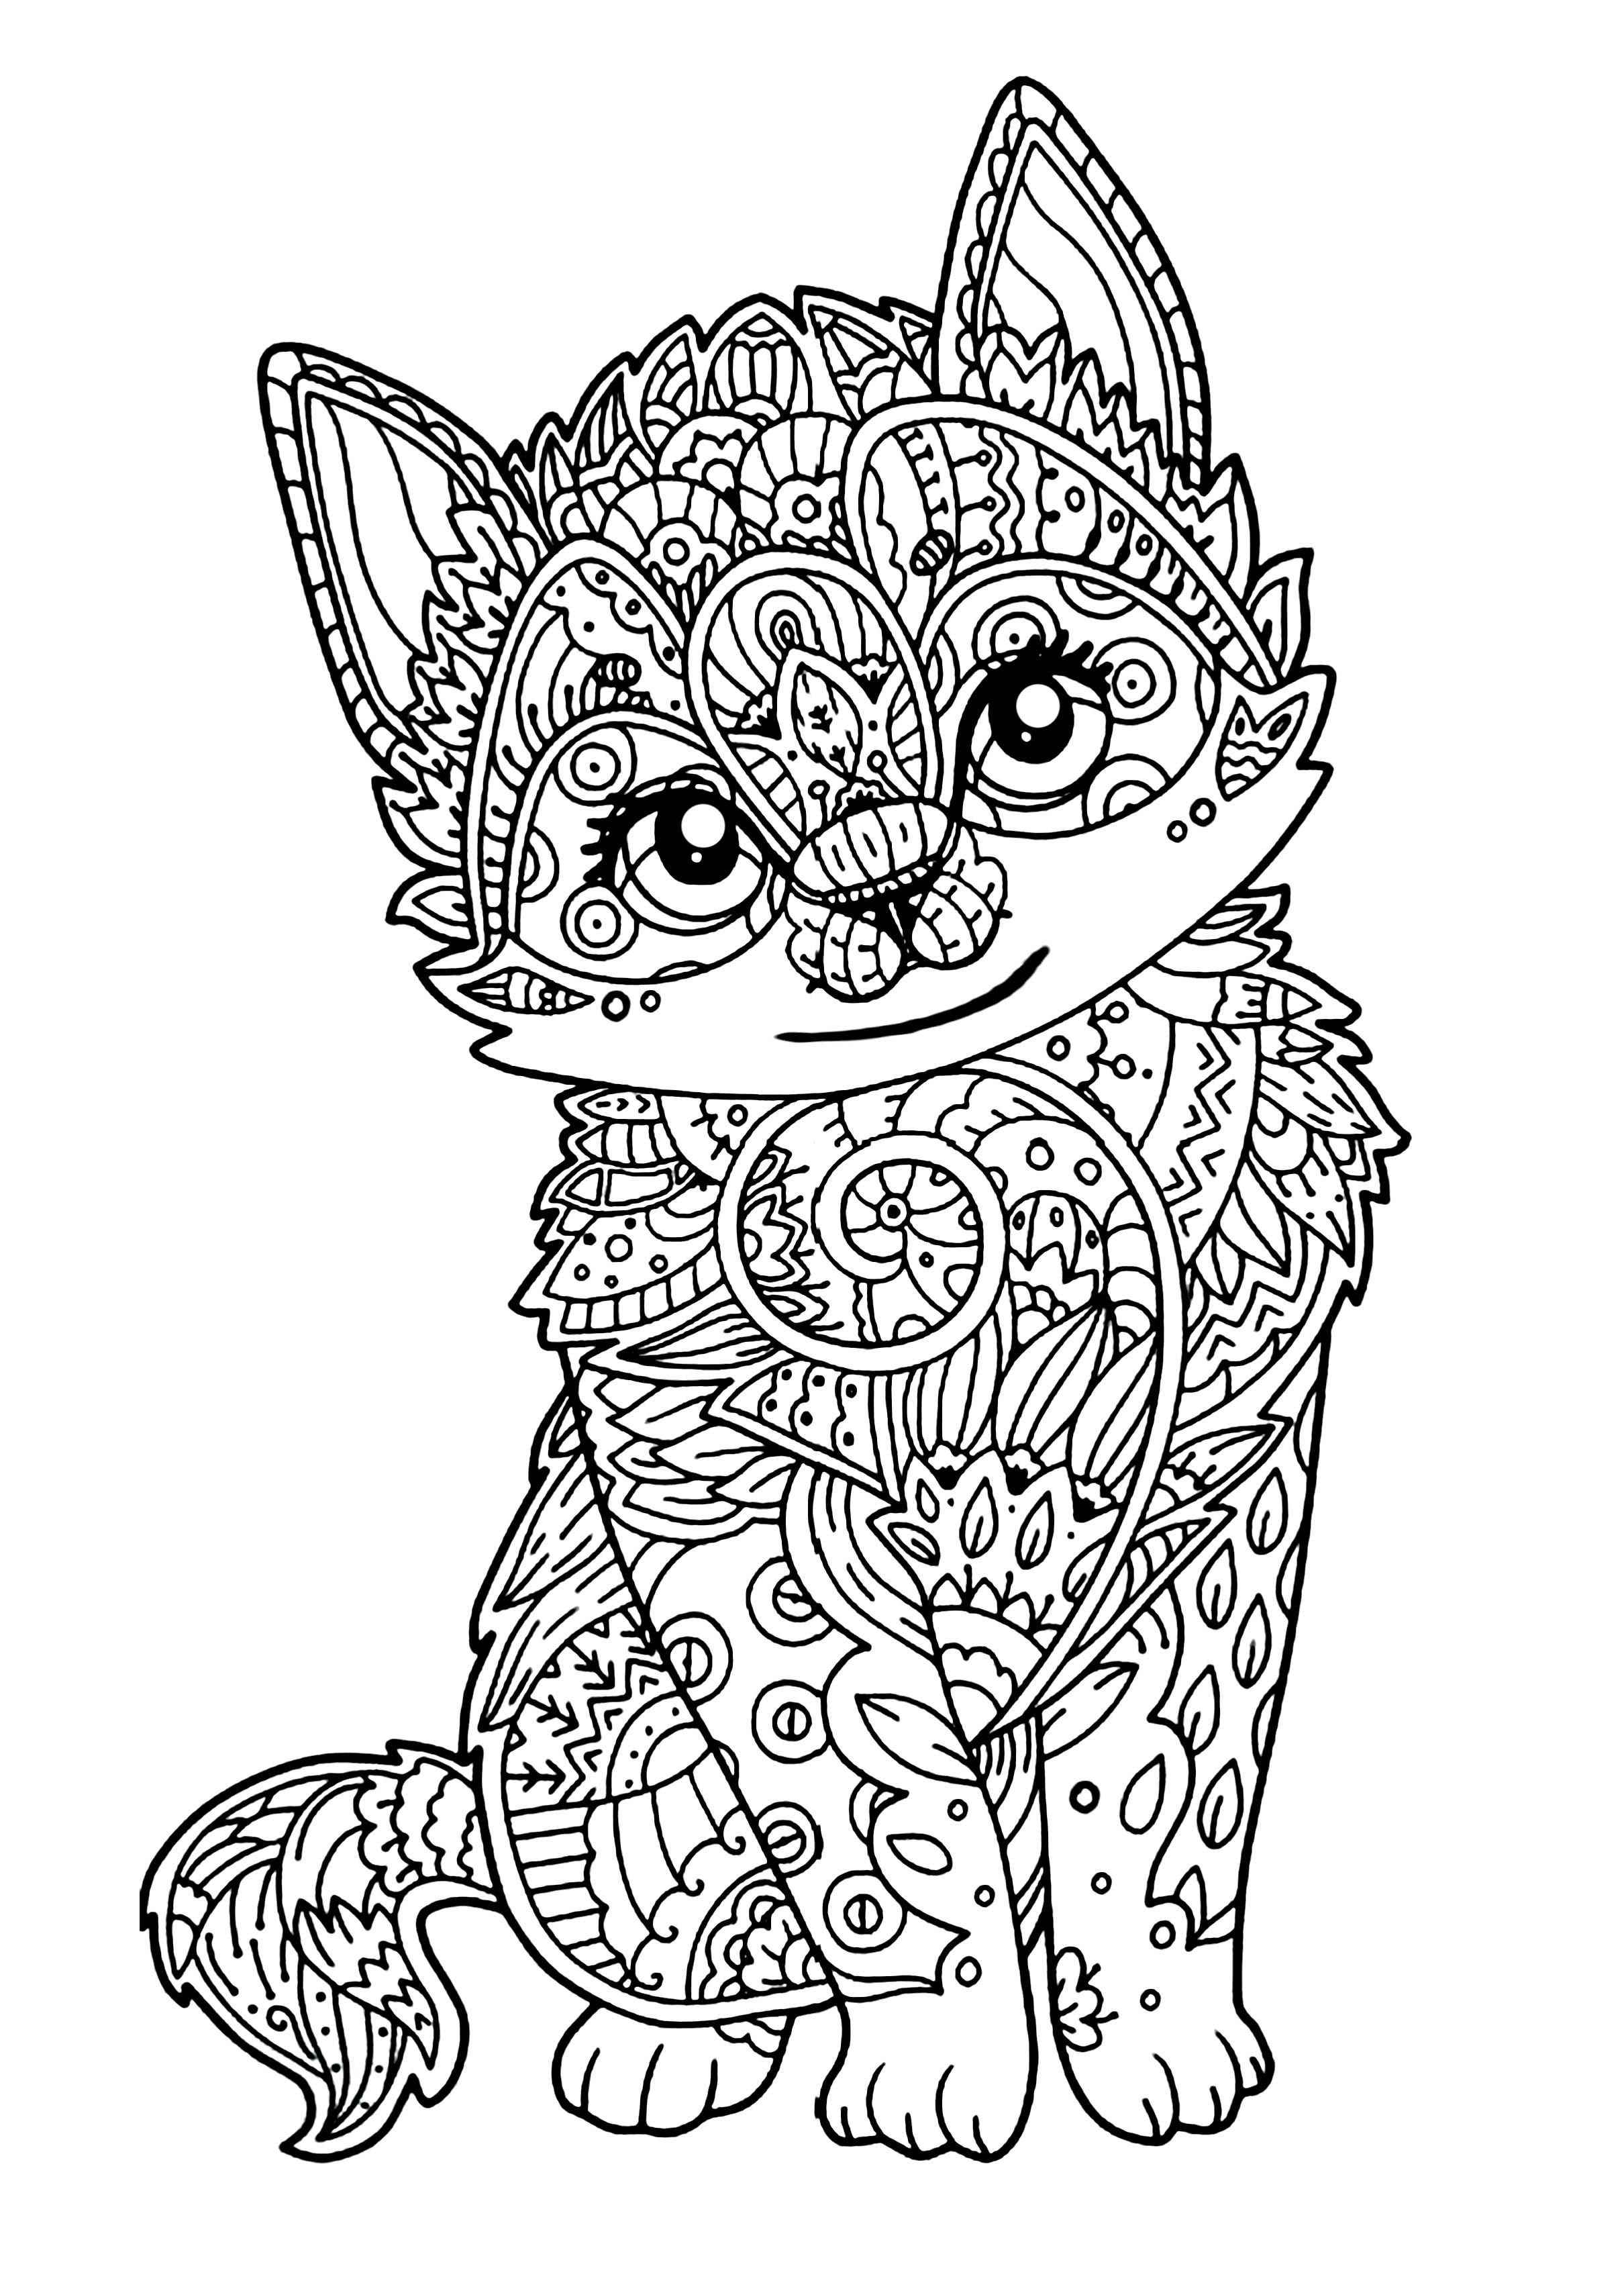 Cute kitten Animals Coloring pages for adults